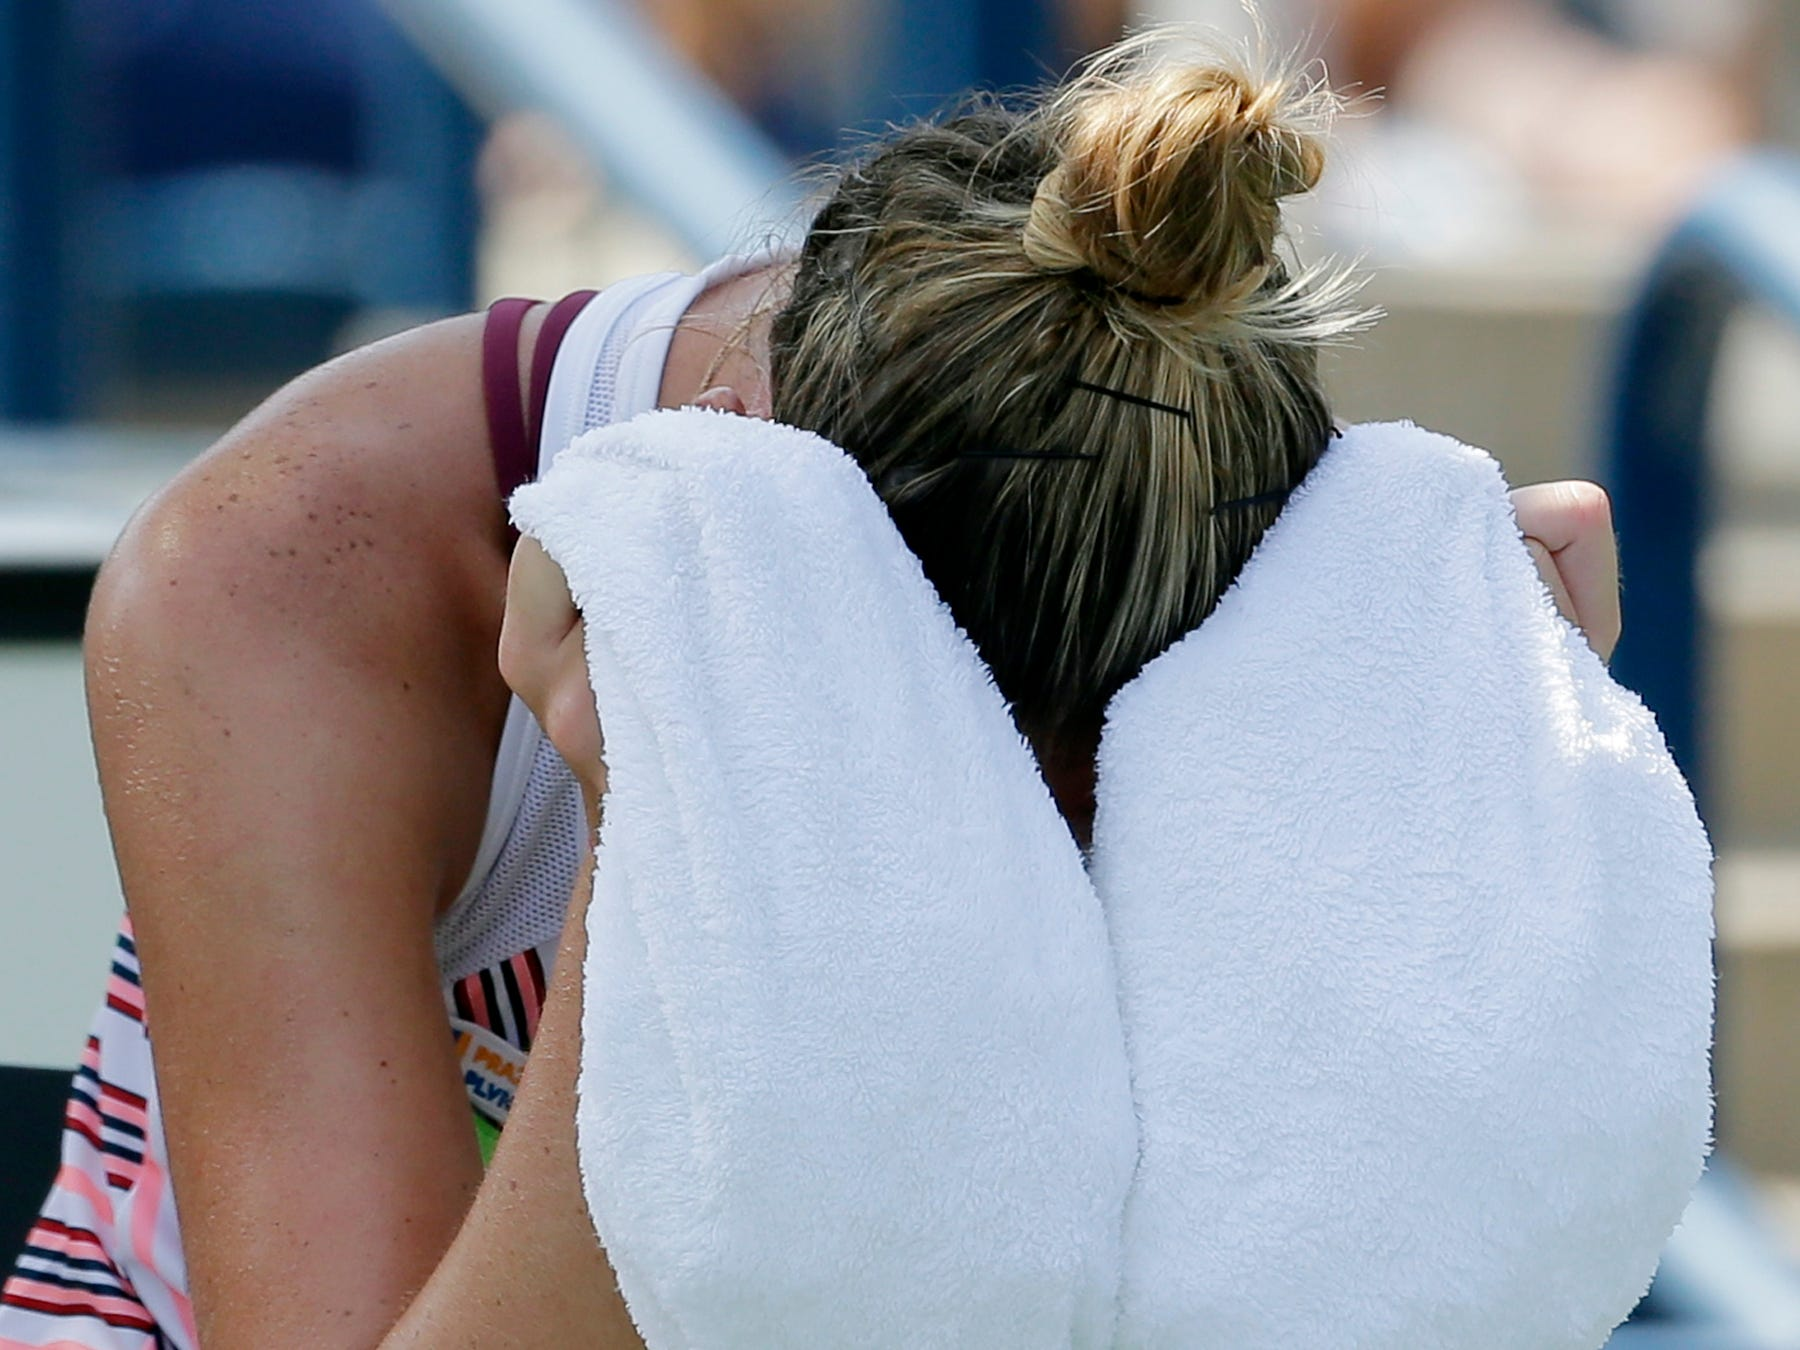 Kristyna Pliskova cools off with an ice towel during a changeover in her match against Kiki Bertens.